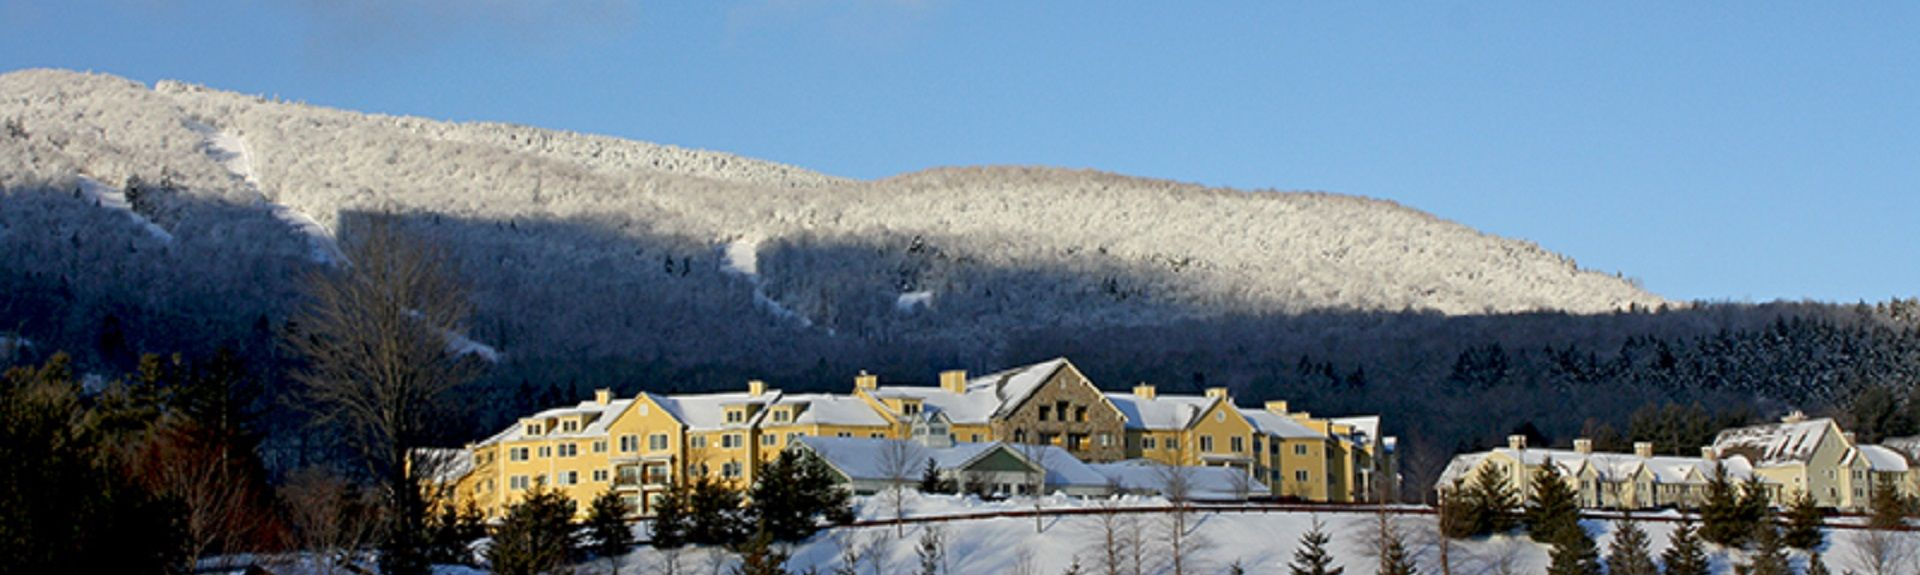 Okemo Mountain Resort, Ludlow, Vermont, United States of America